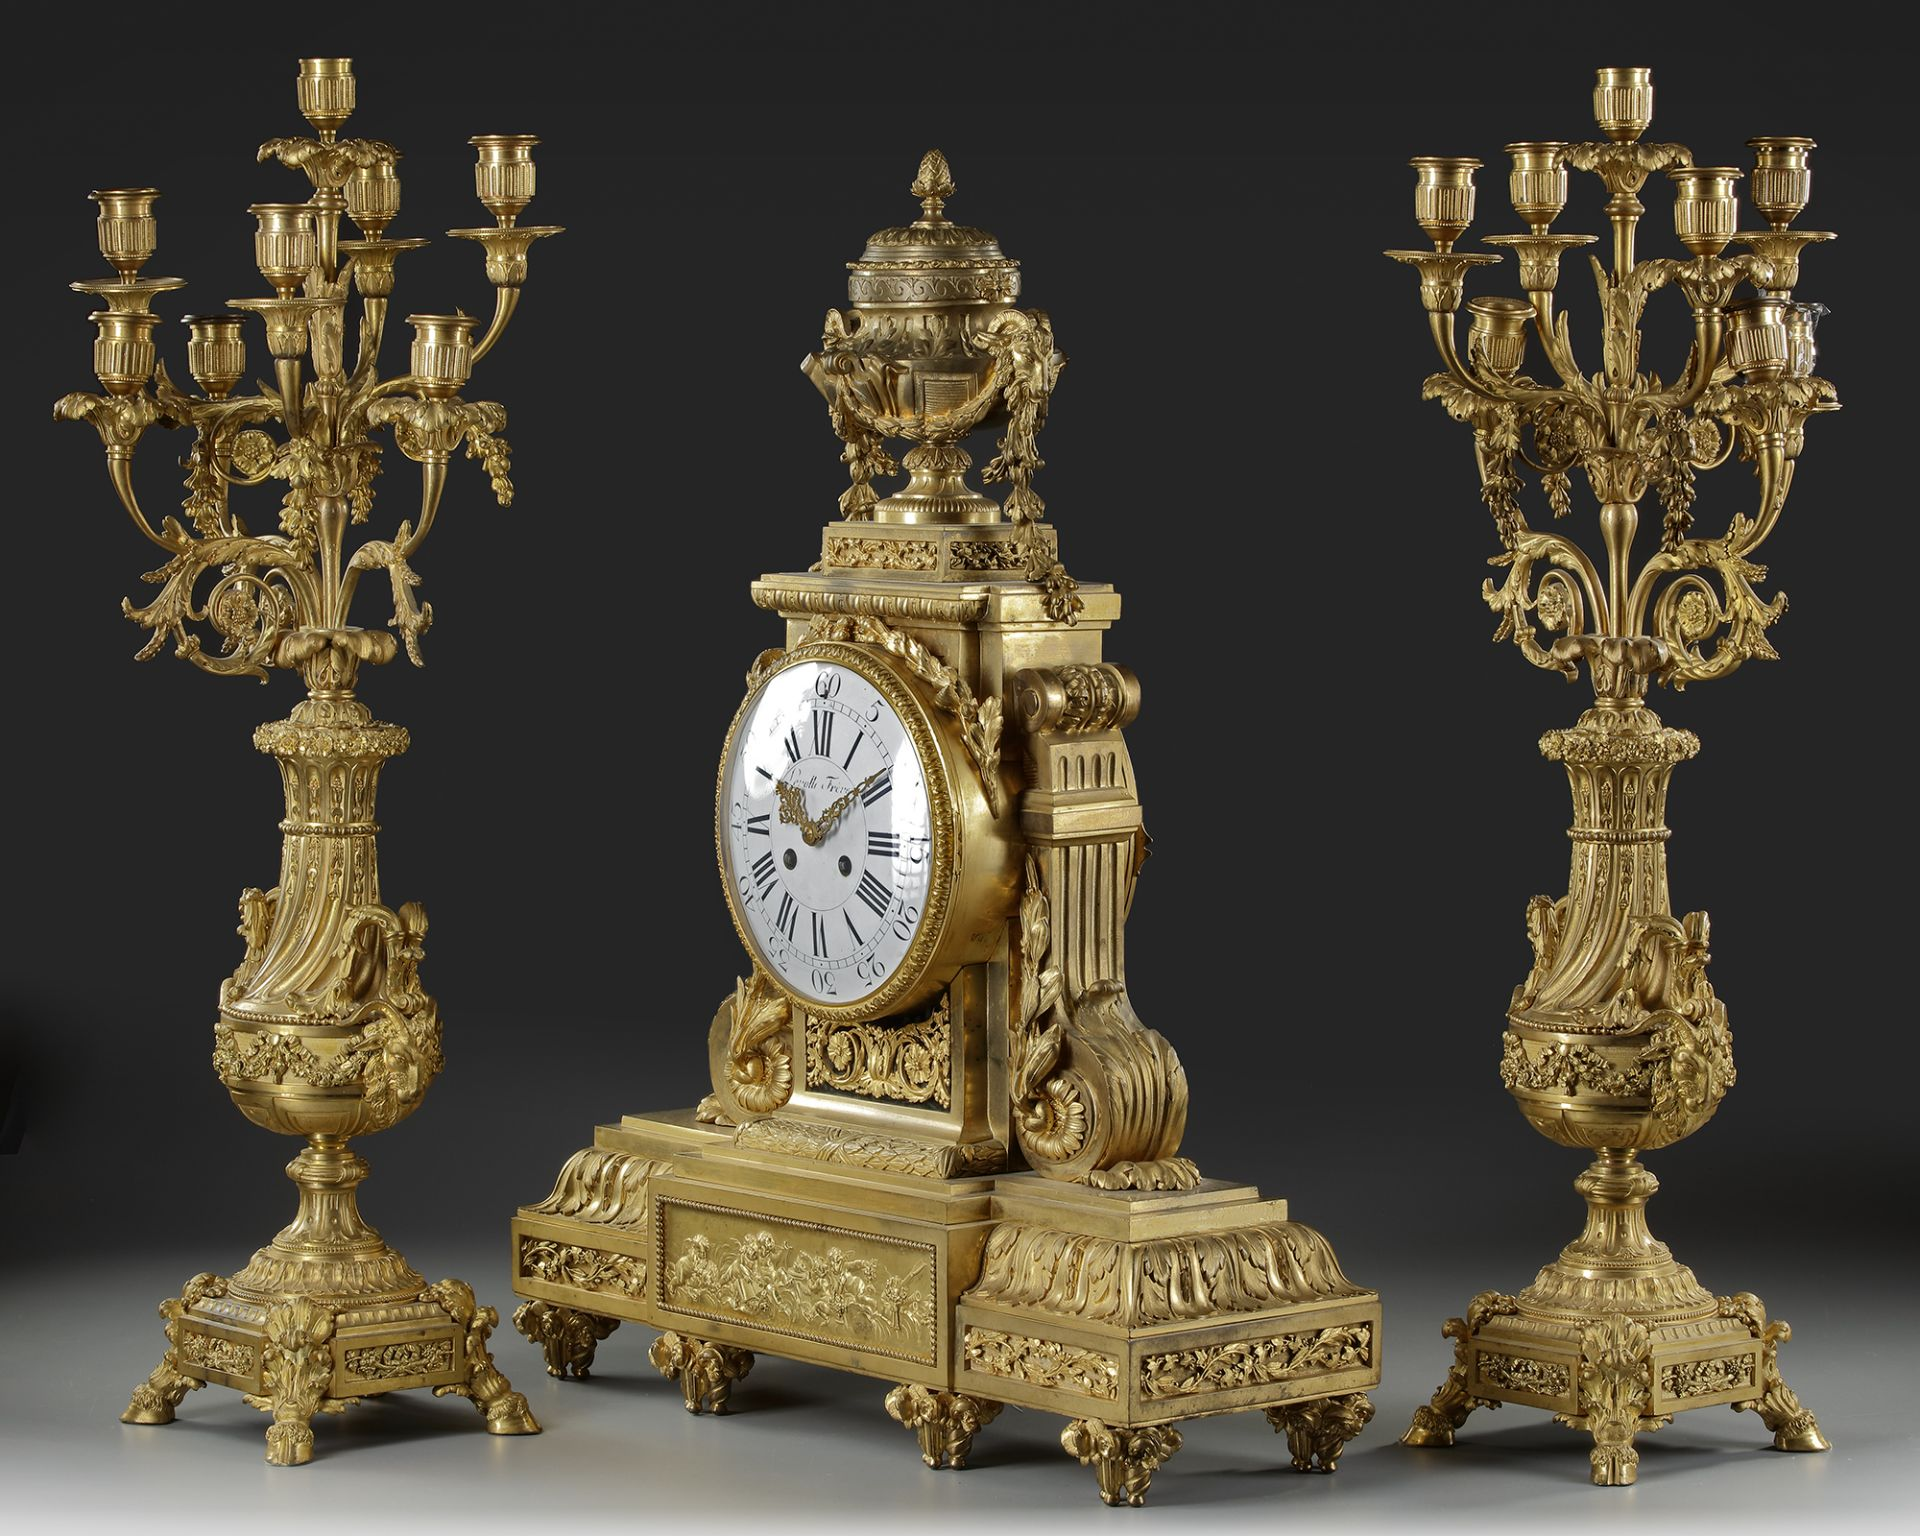 A FRENCH ORMOLU CLOCK SET, LATE 19TH CENTURY - Image 2 of 3